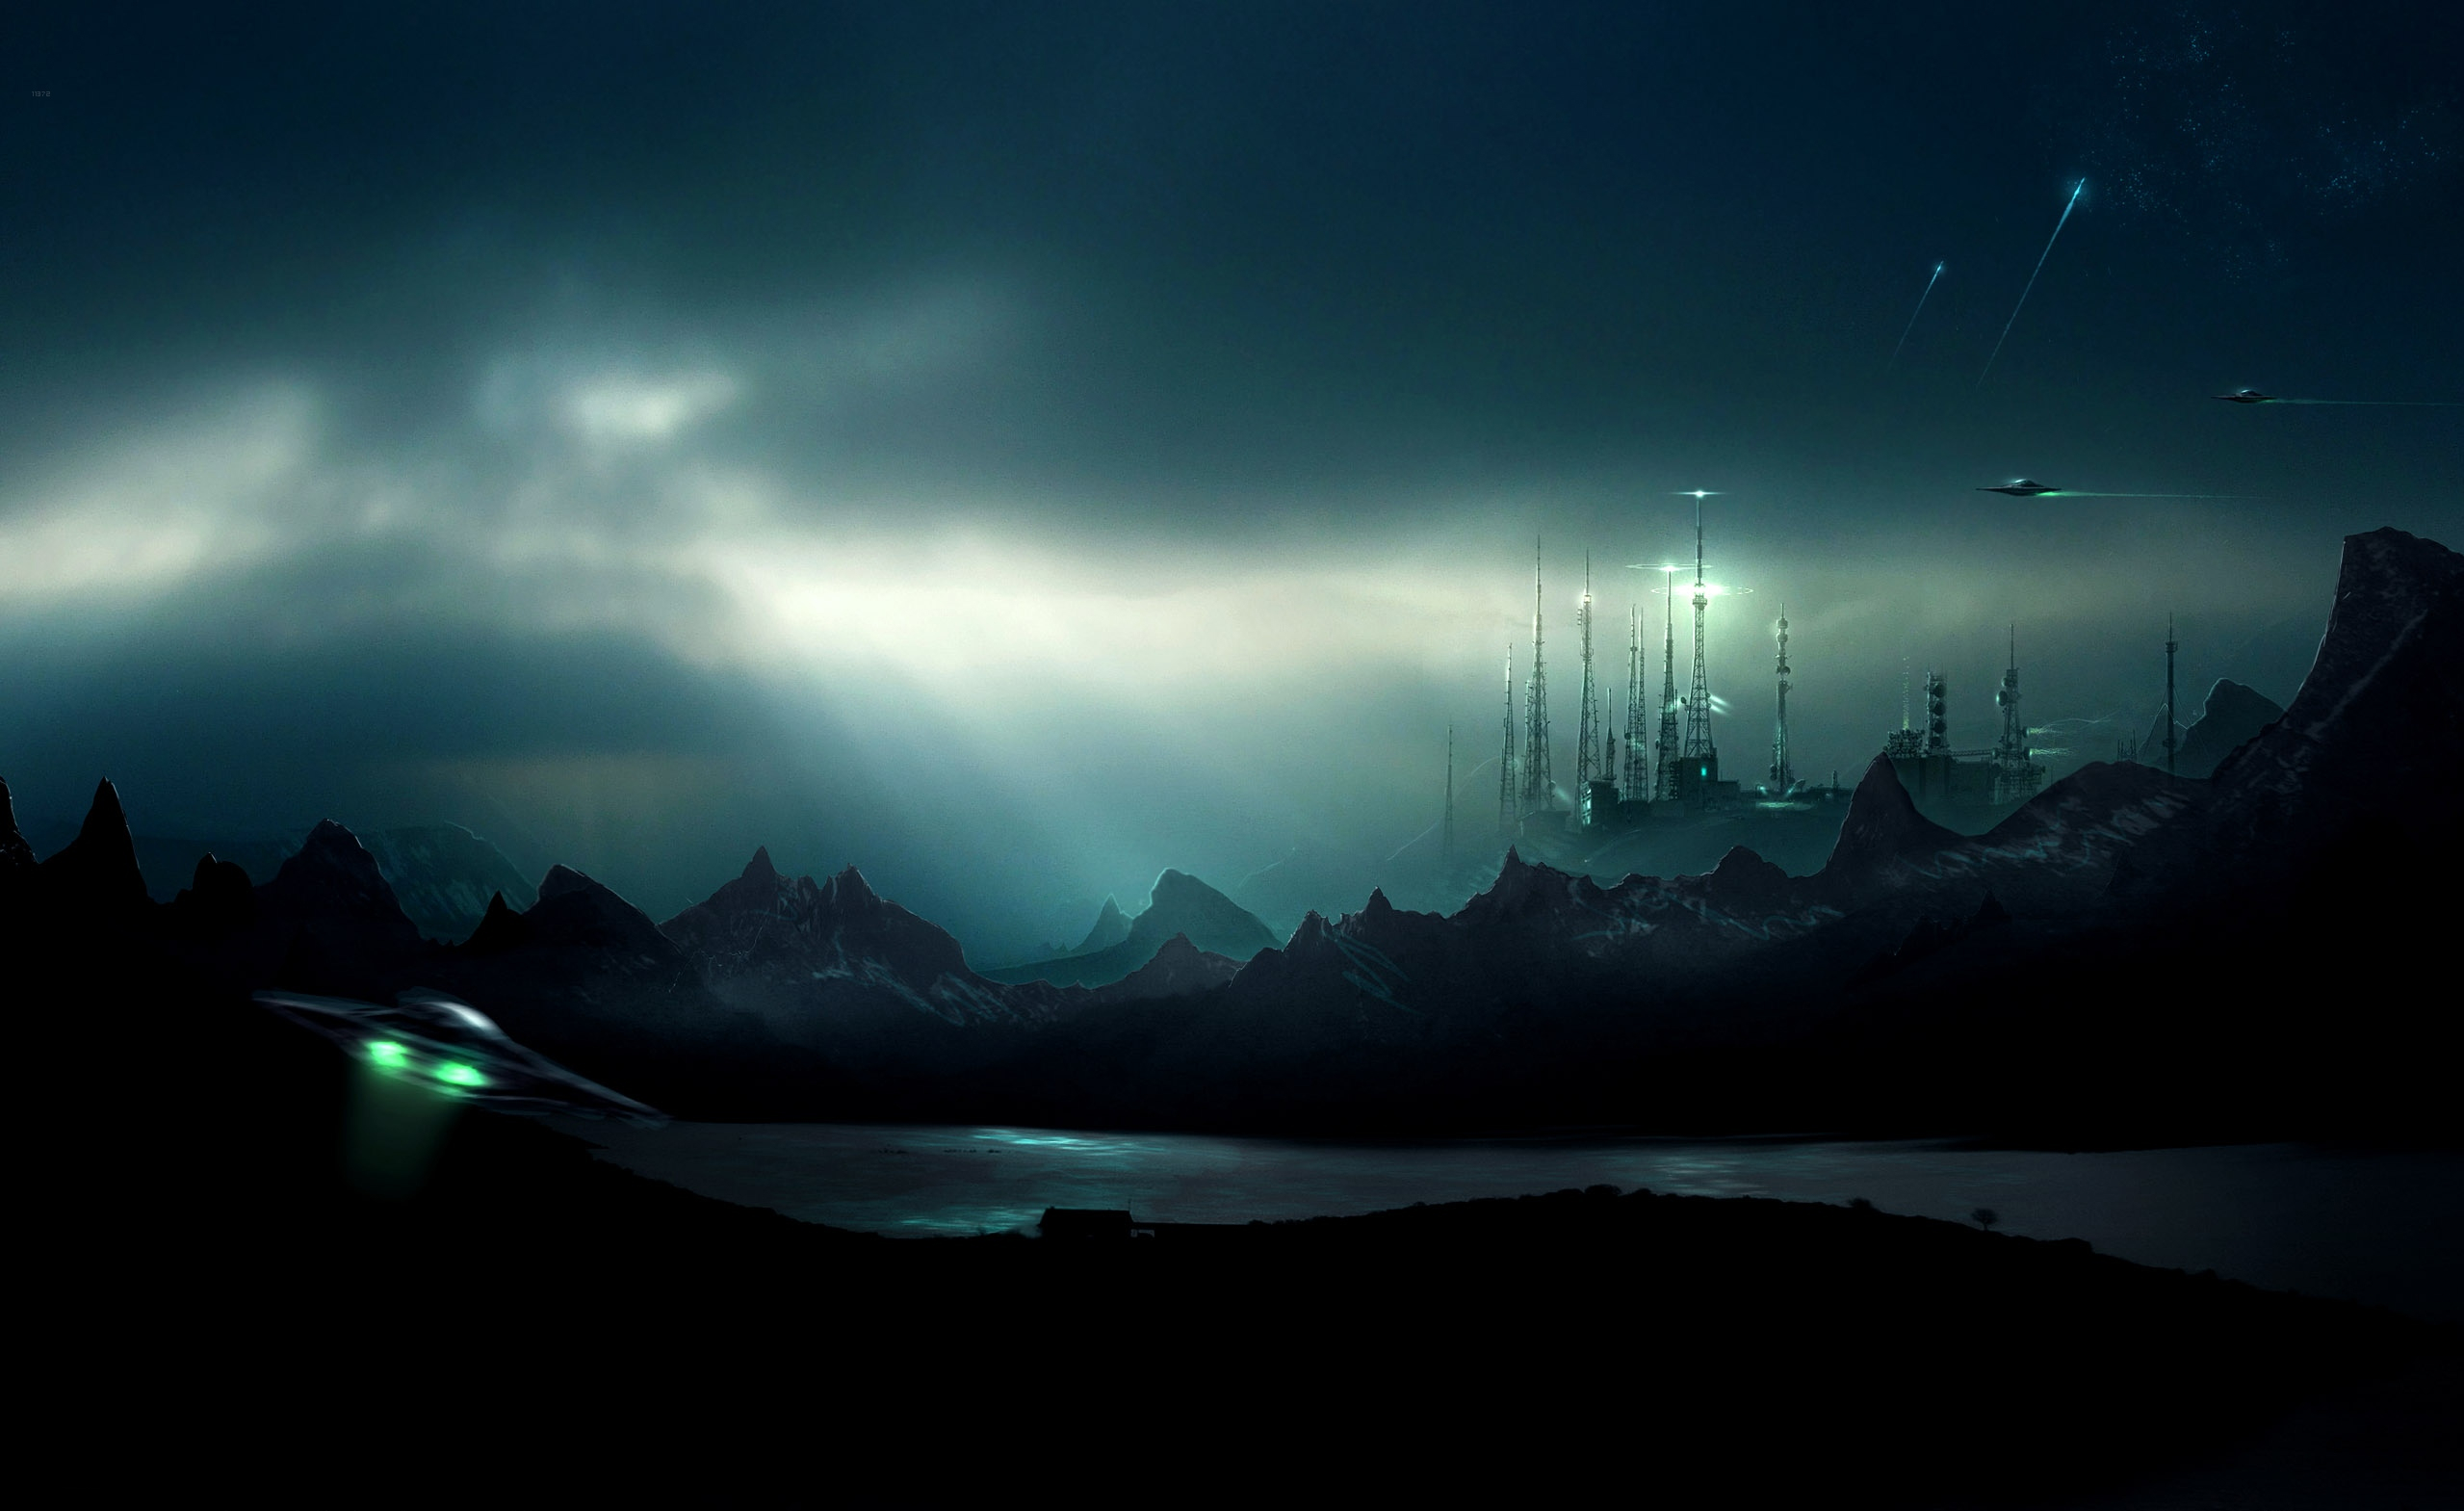 23 Futuristic Hd Wallpapers  Hintergründe  Wallpaper Abyss